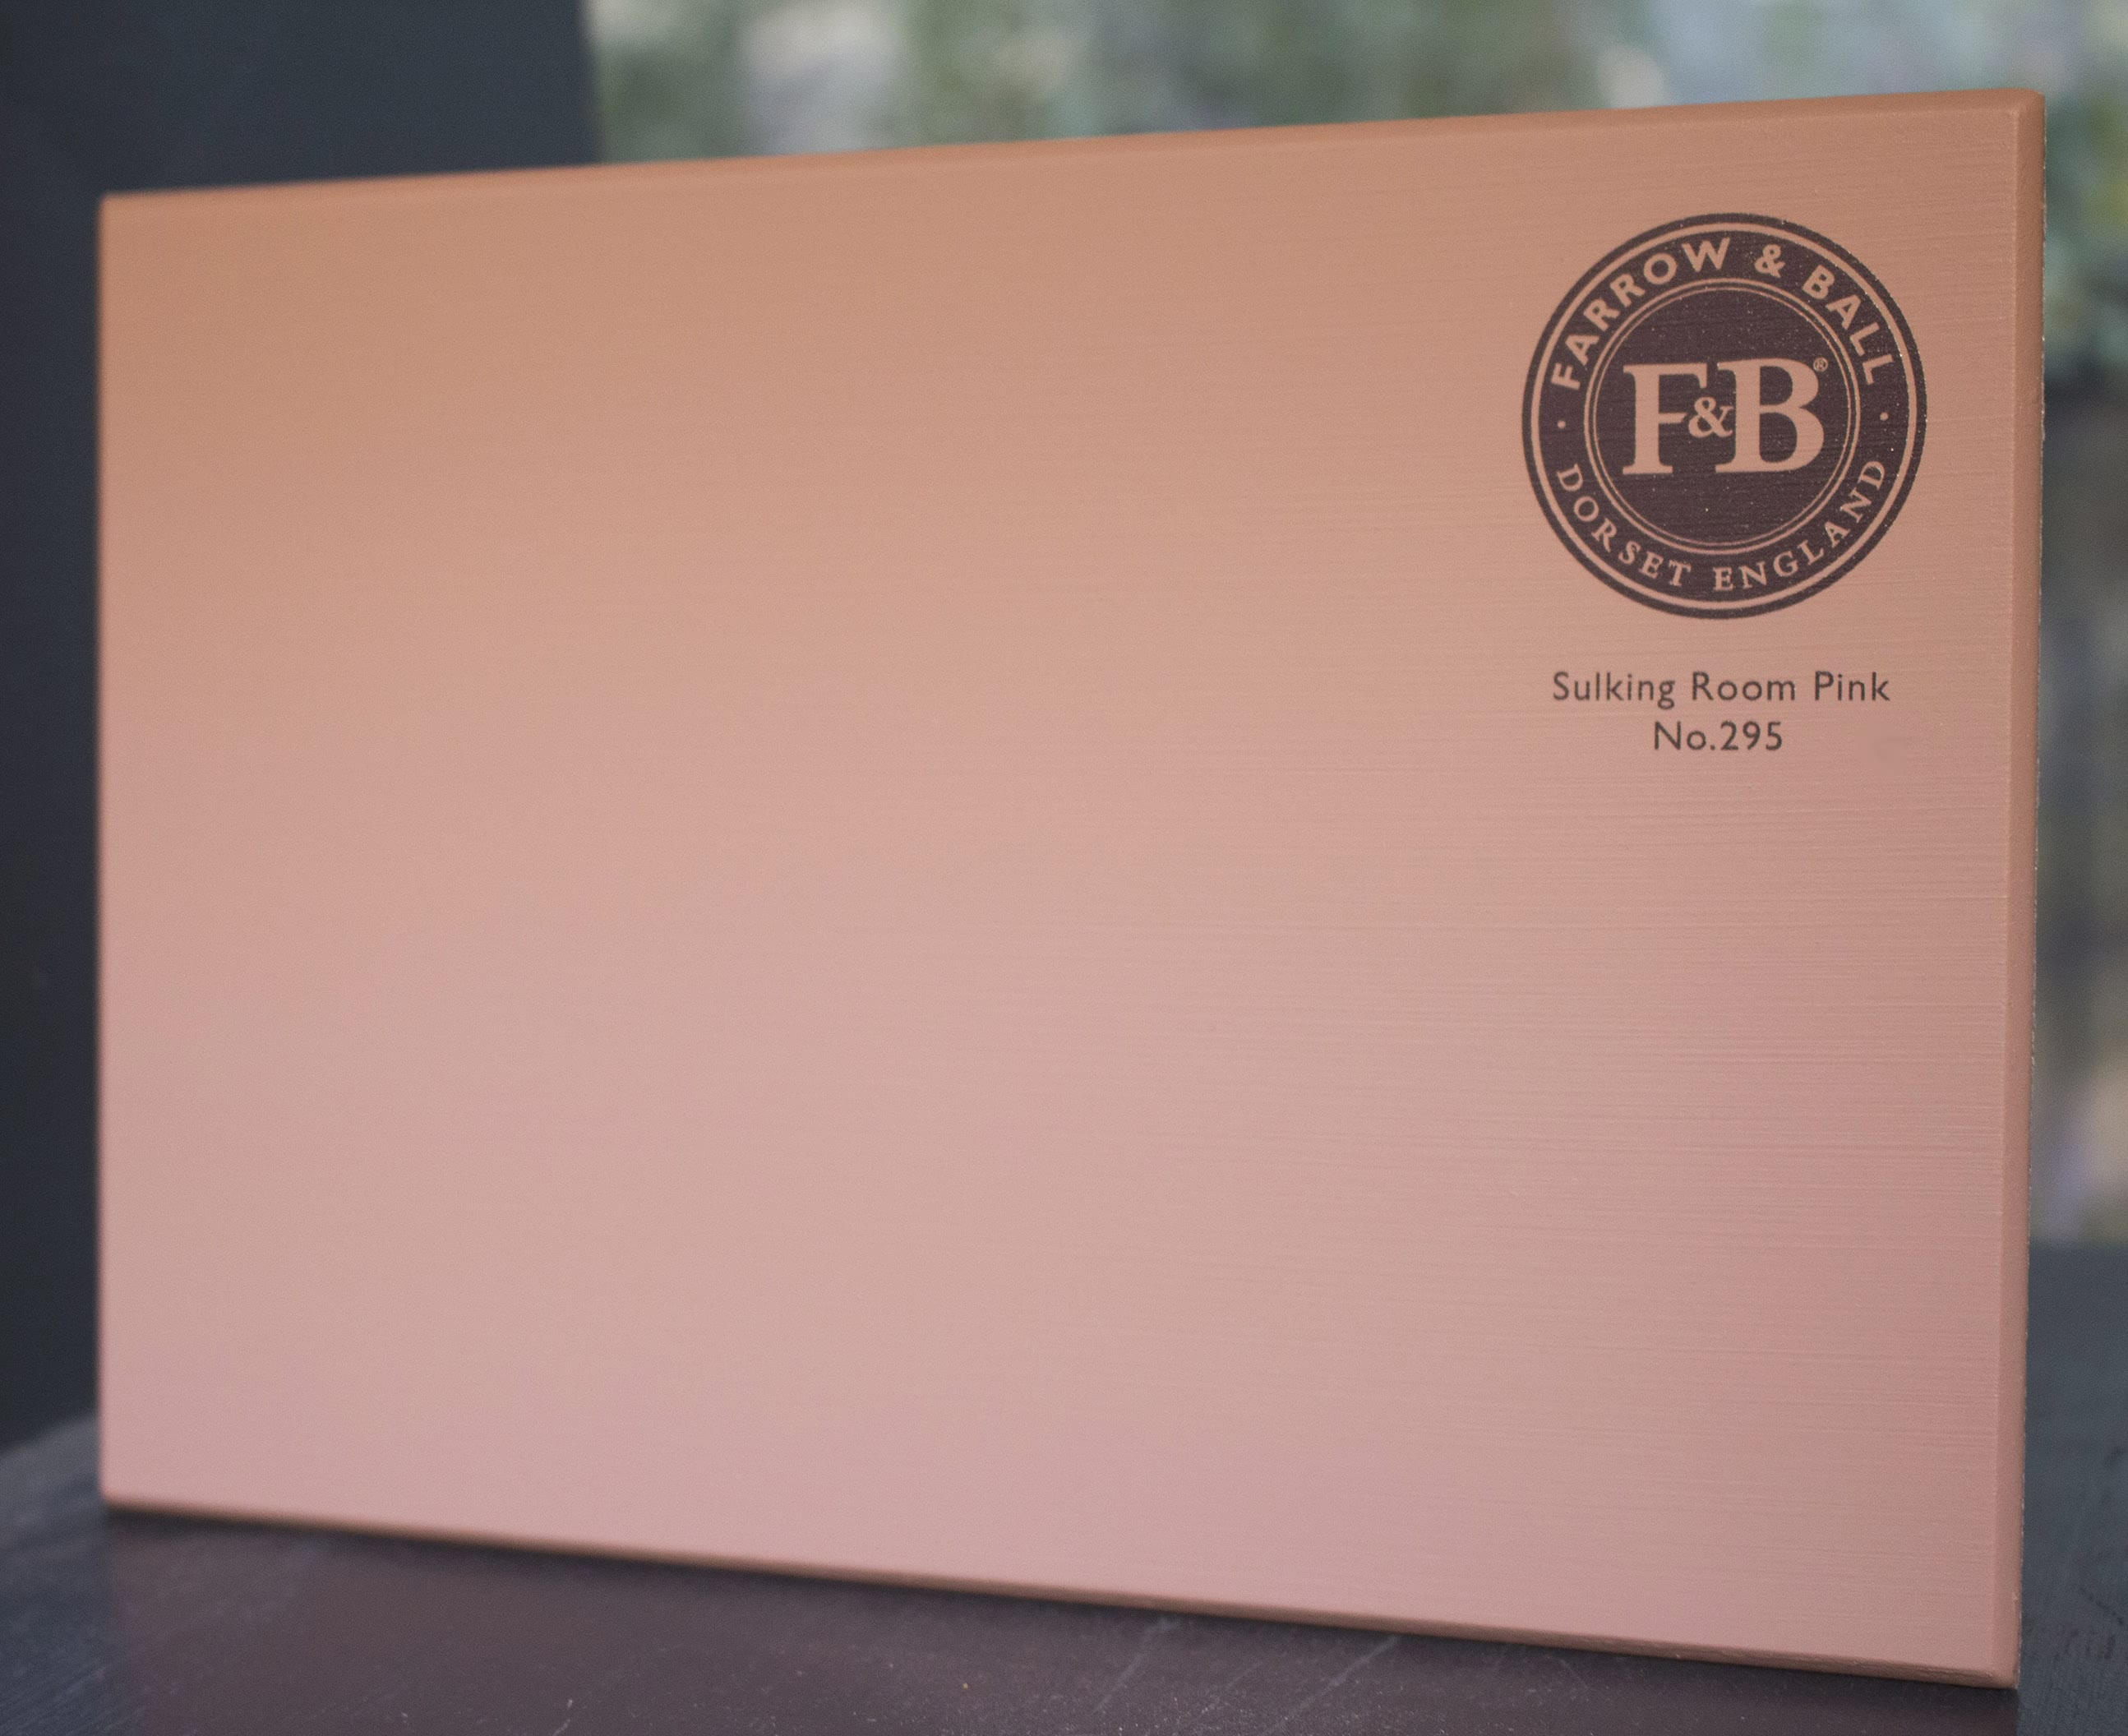 farrow&ball, farrow and ball, paint, decorating, paint brush, Sulking Room Pink